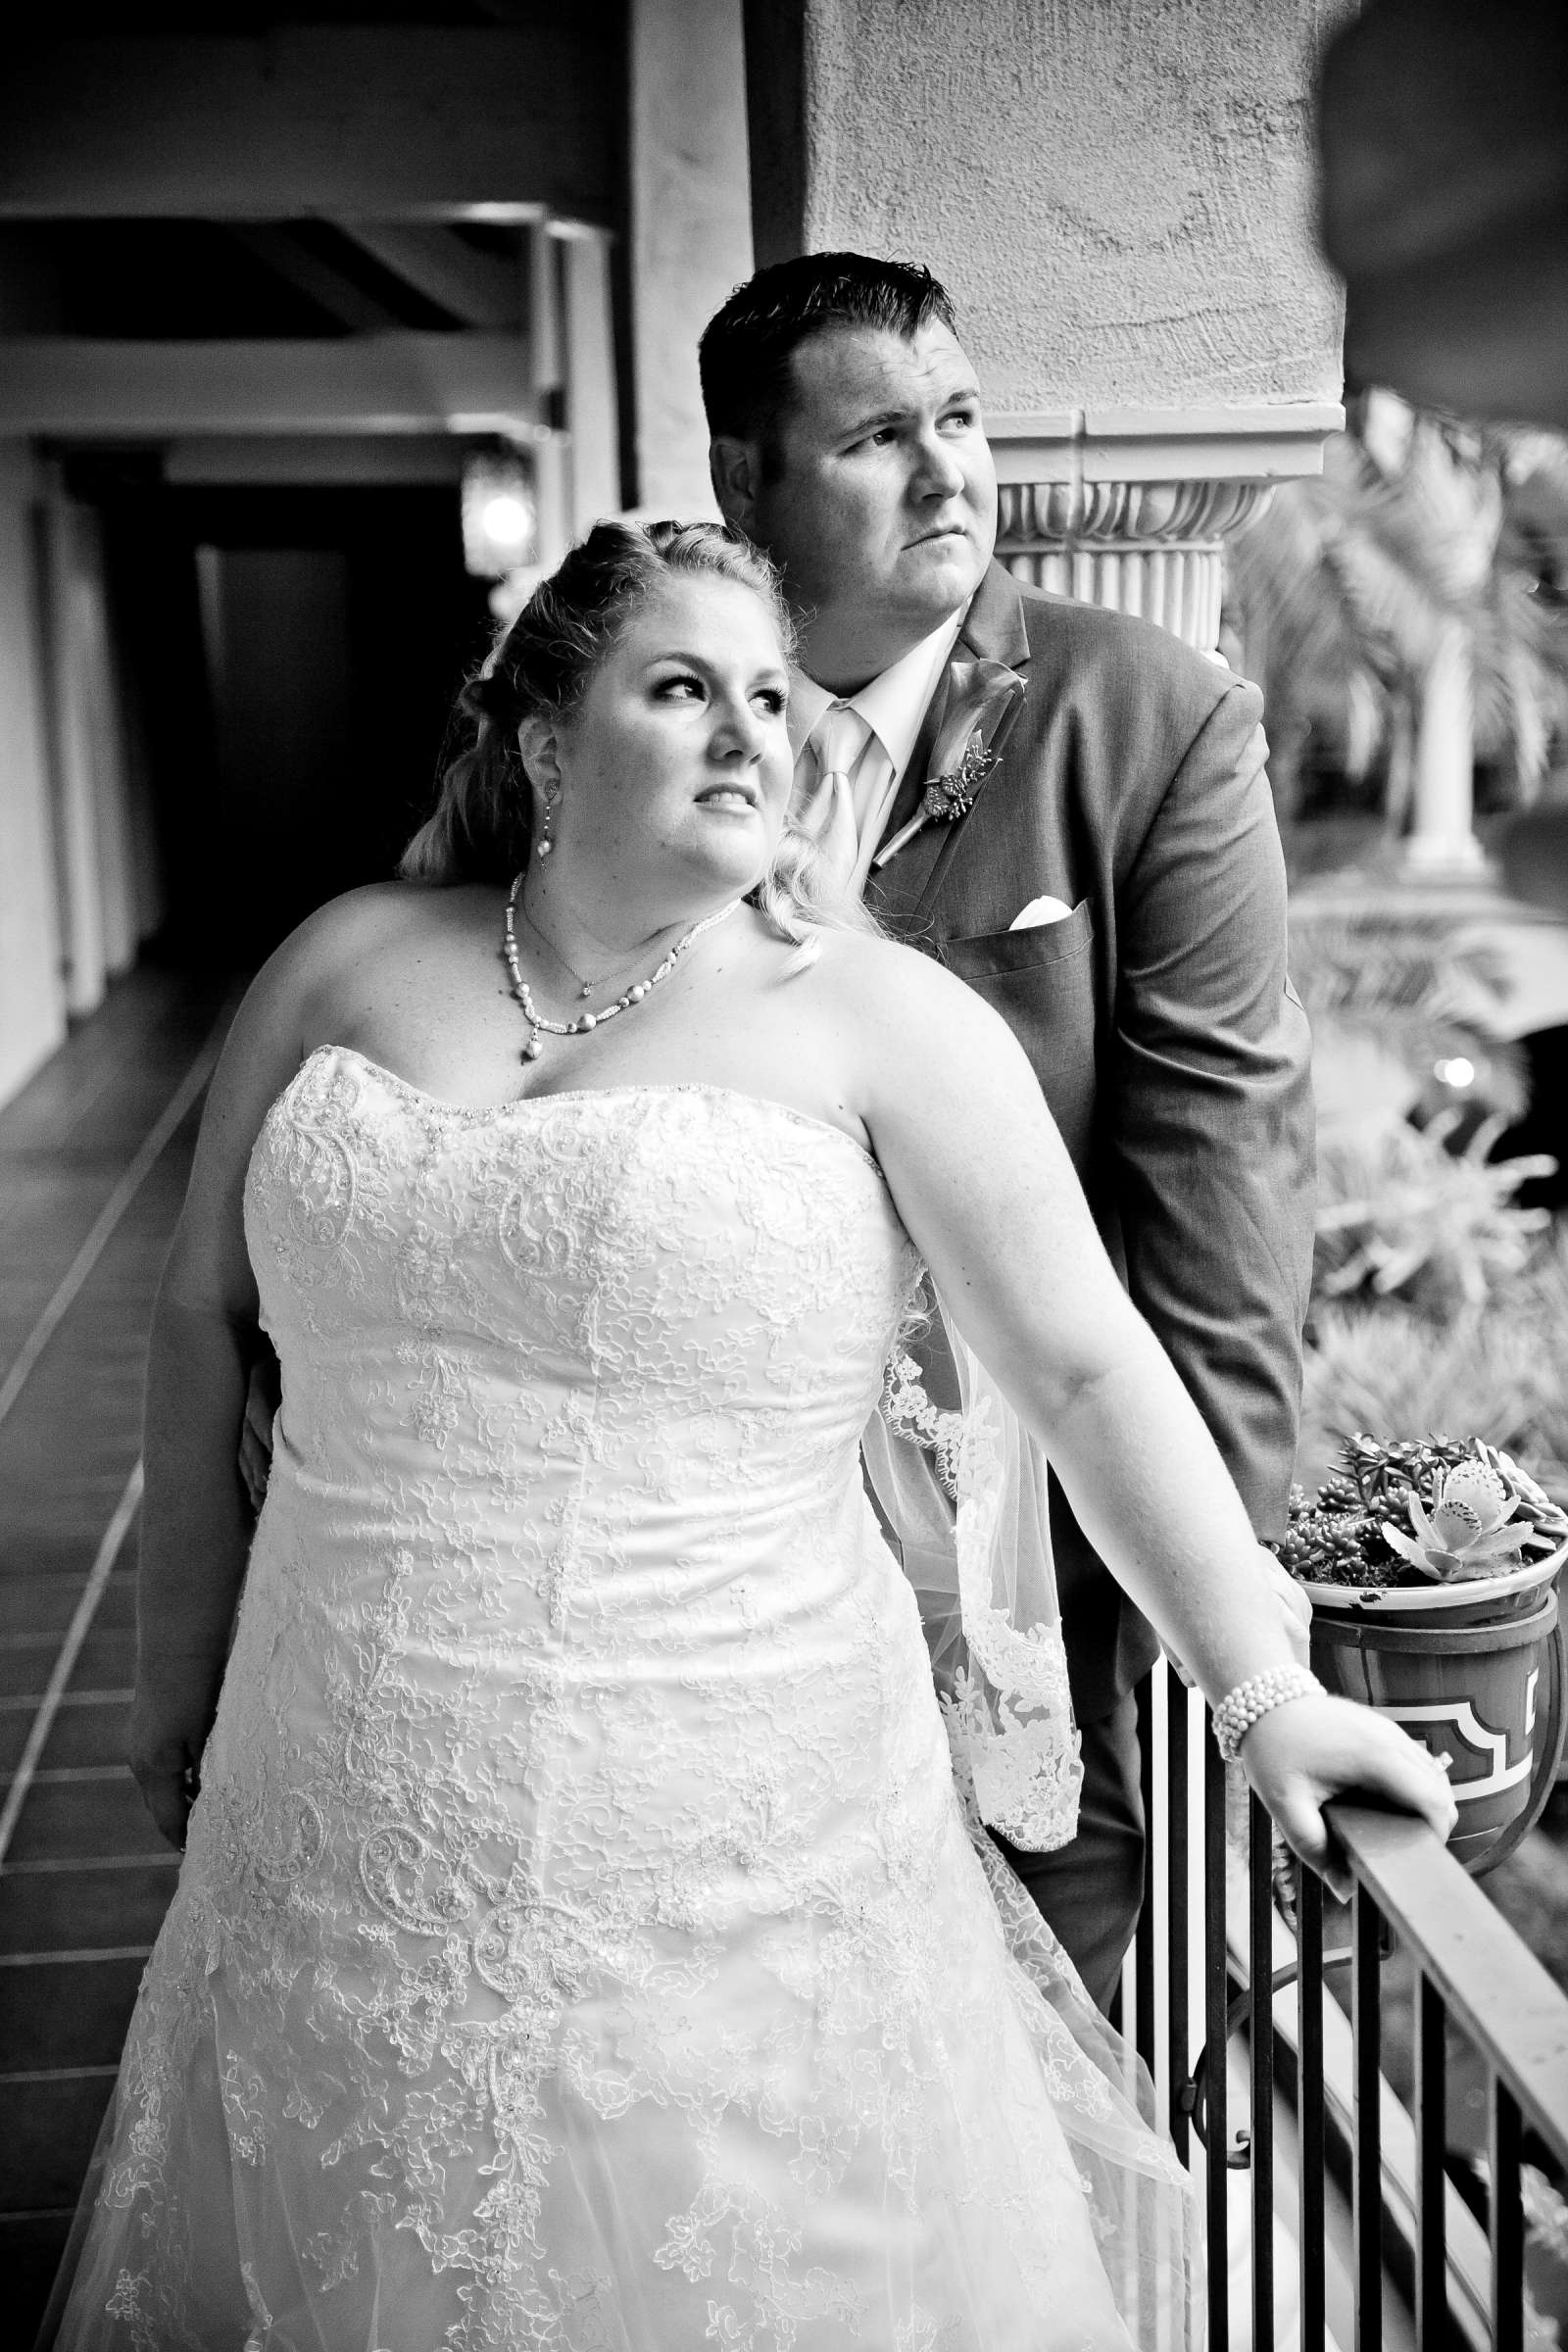 The Prado Wedding coordinated by Monarch Weddings, Eileen and Robbie Wedding Photo #13 by True Photography